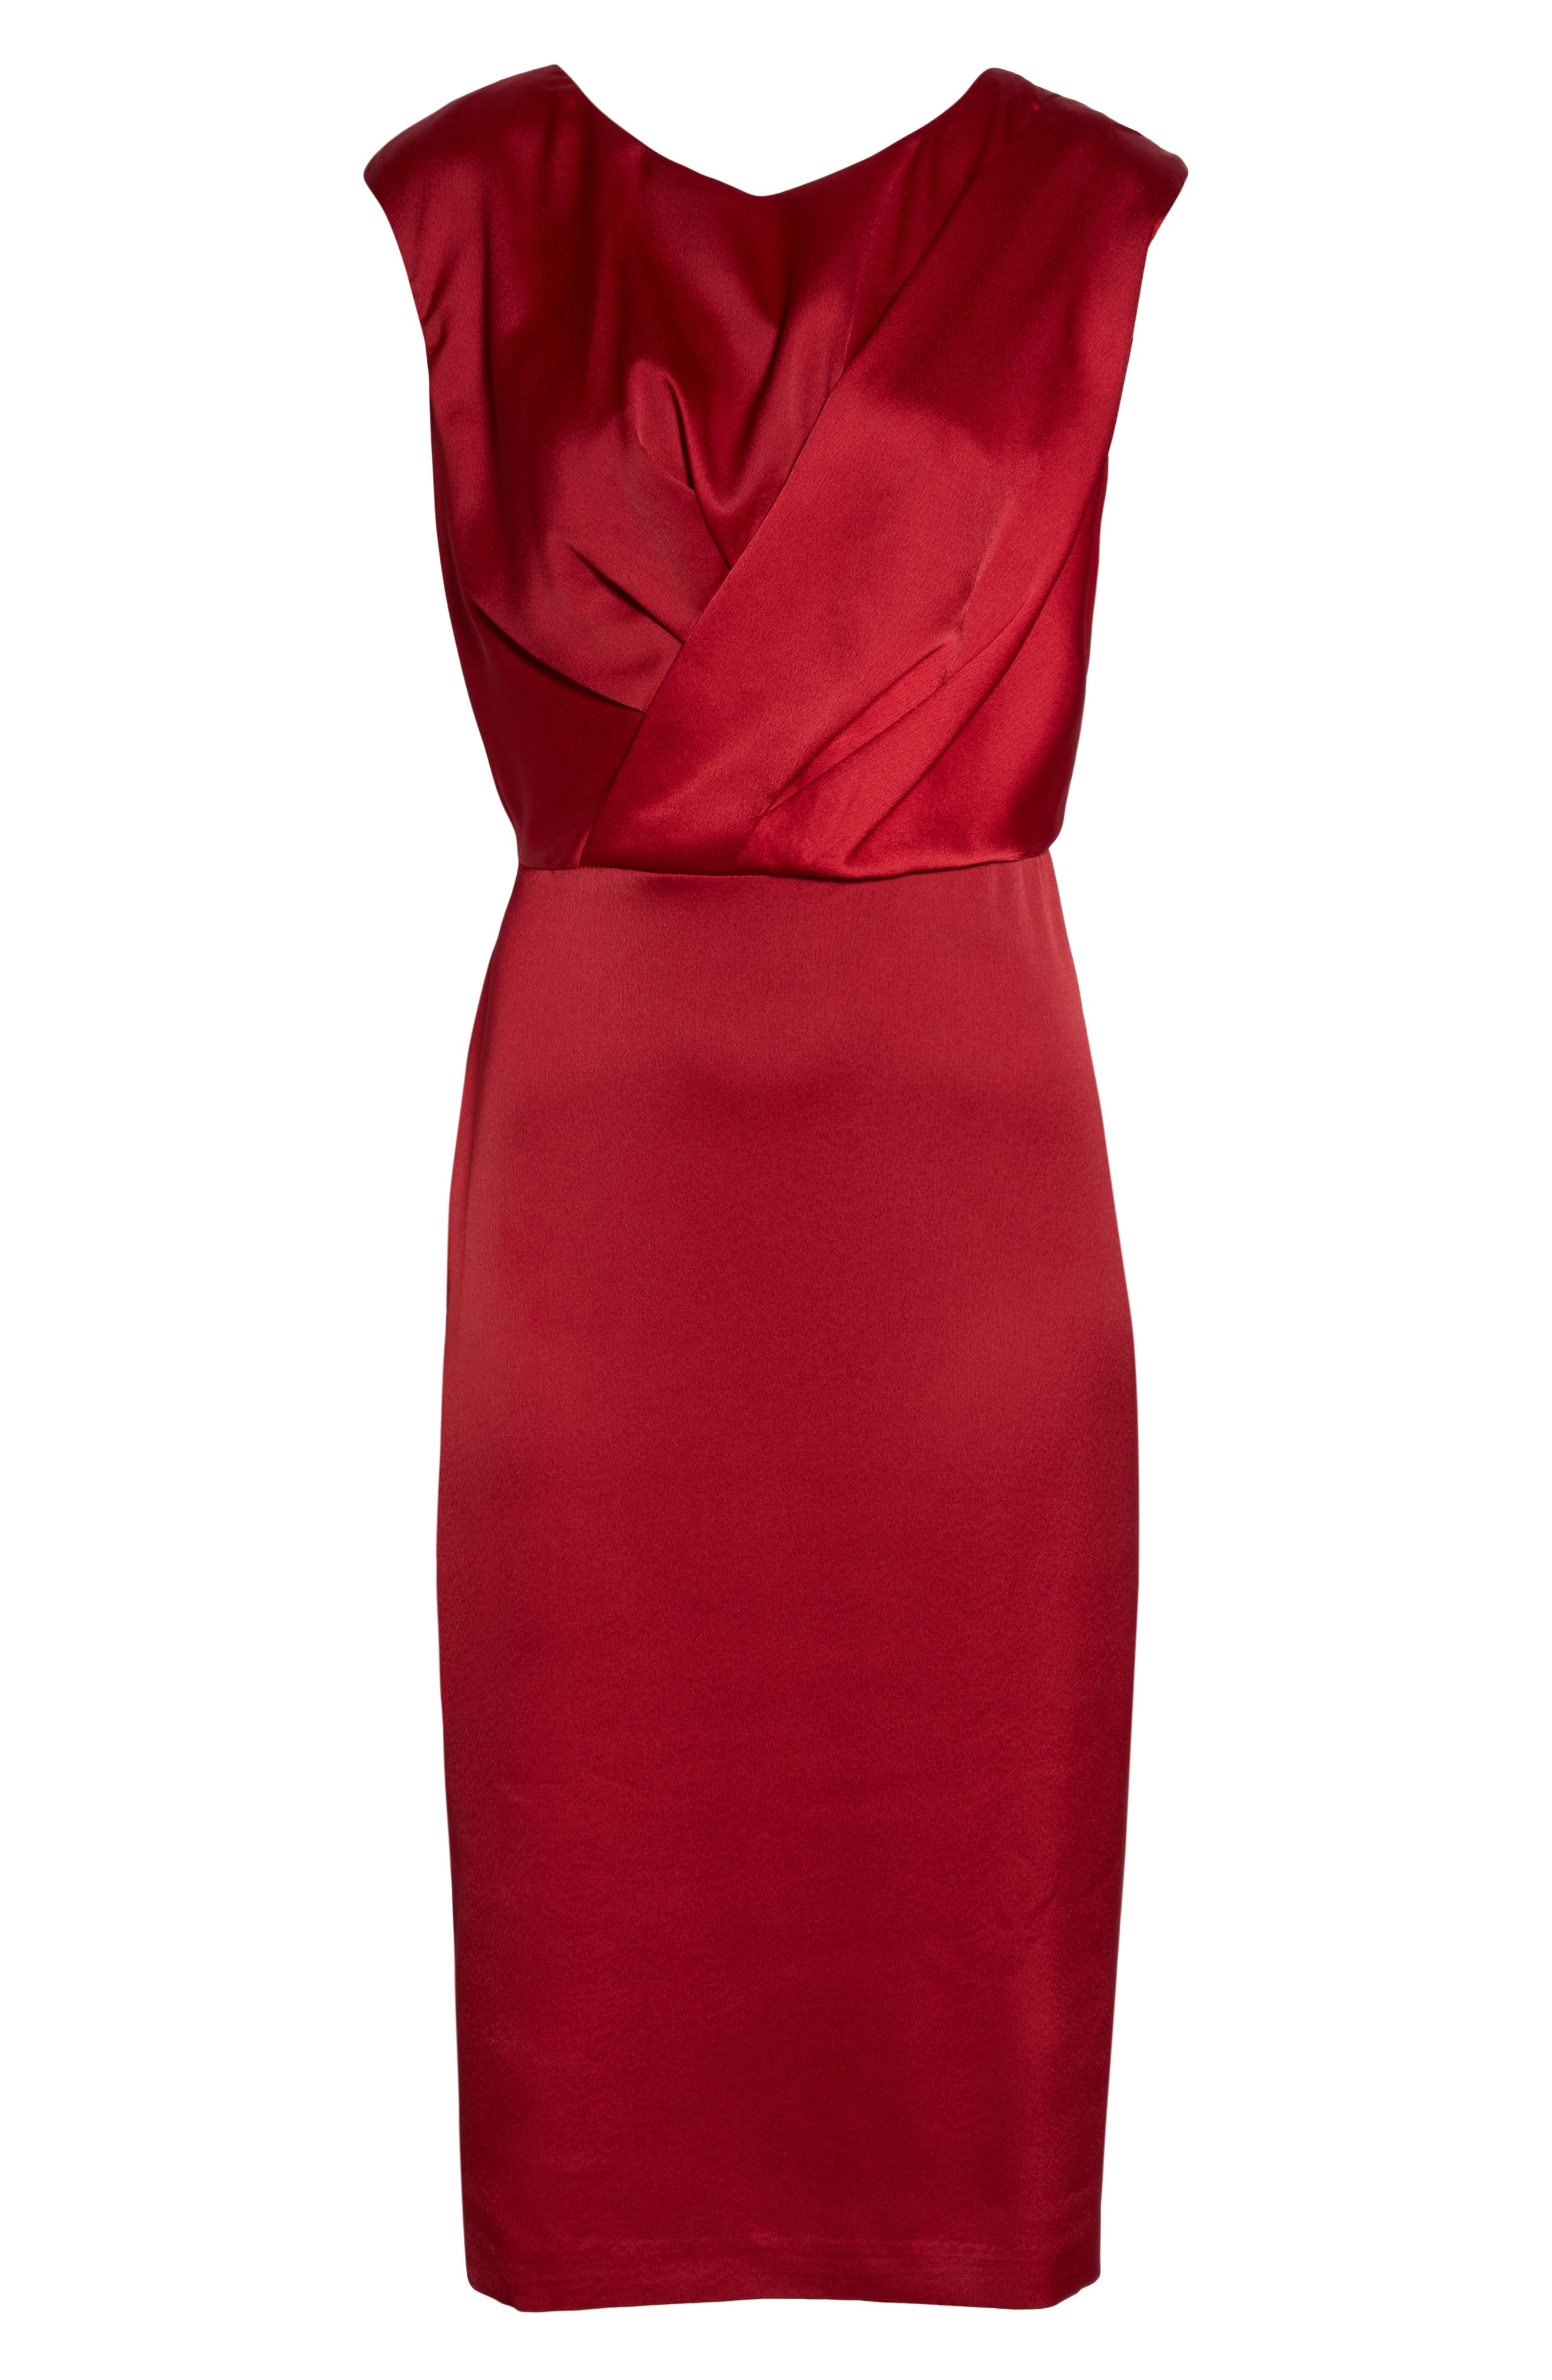 MAGGY LONDON,                             Crossover Bodice Satin Midi Dress,                             Alternate thumbnail 3, color,                             MAJESTIC SCARLET